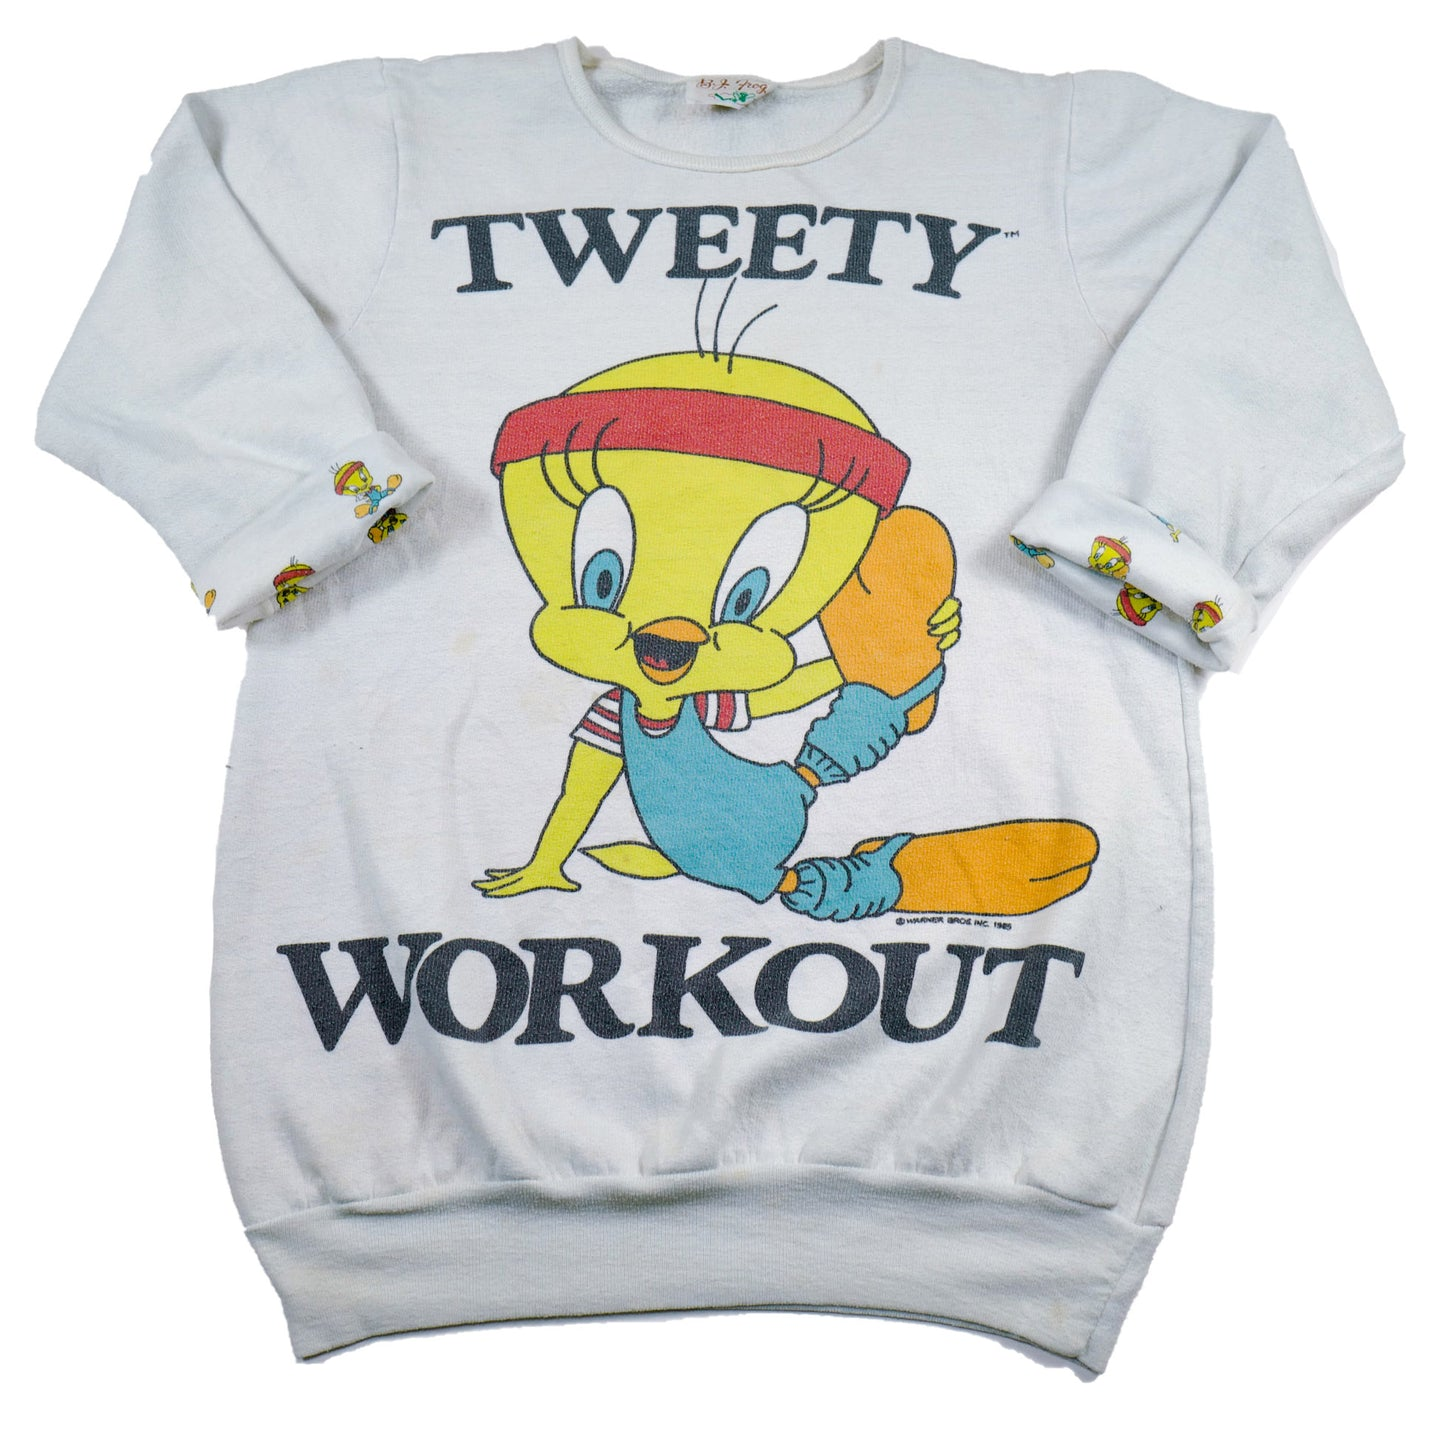 Vintage 80's Tweety Workout Sweatshirt